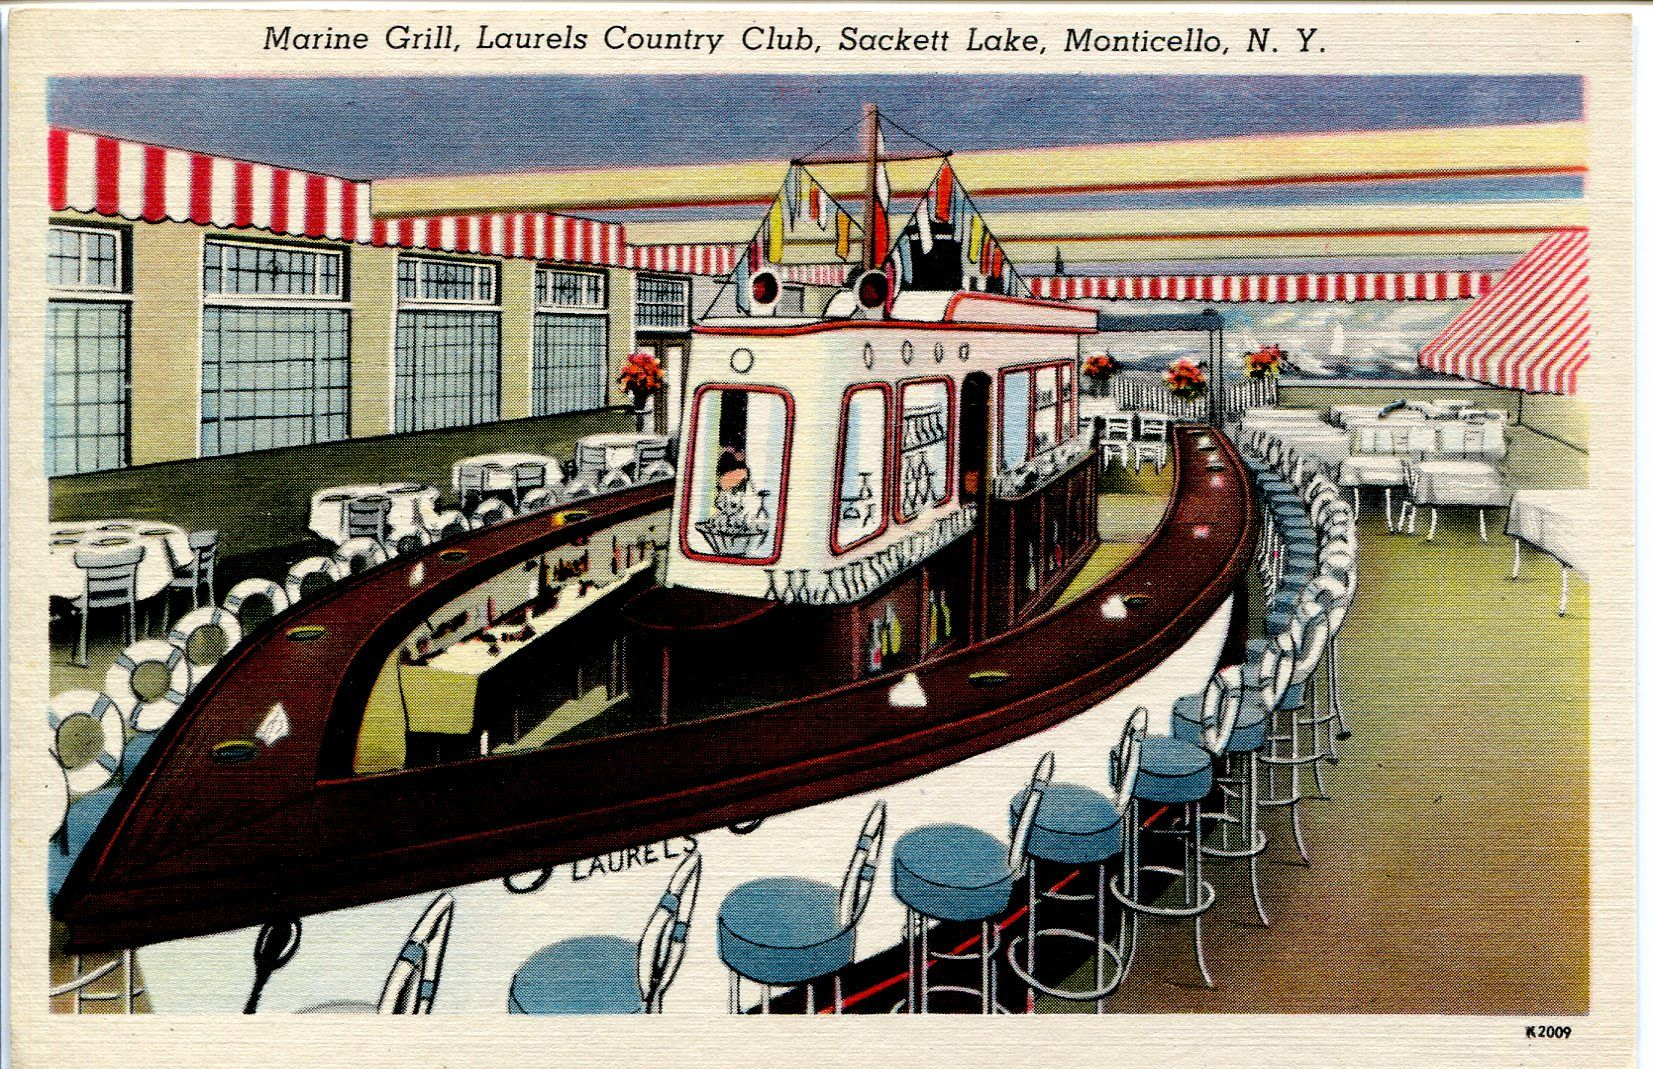 Laurels Country Club Sackett Lake Monticello New York The Marine Grill